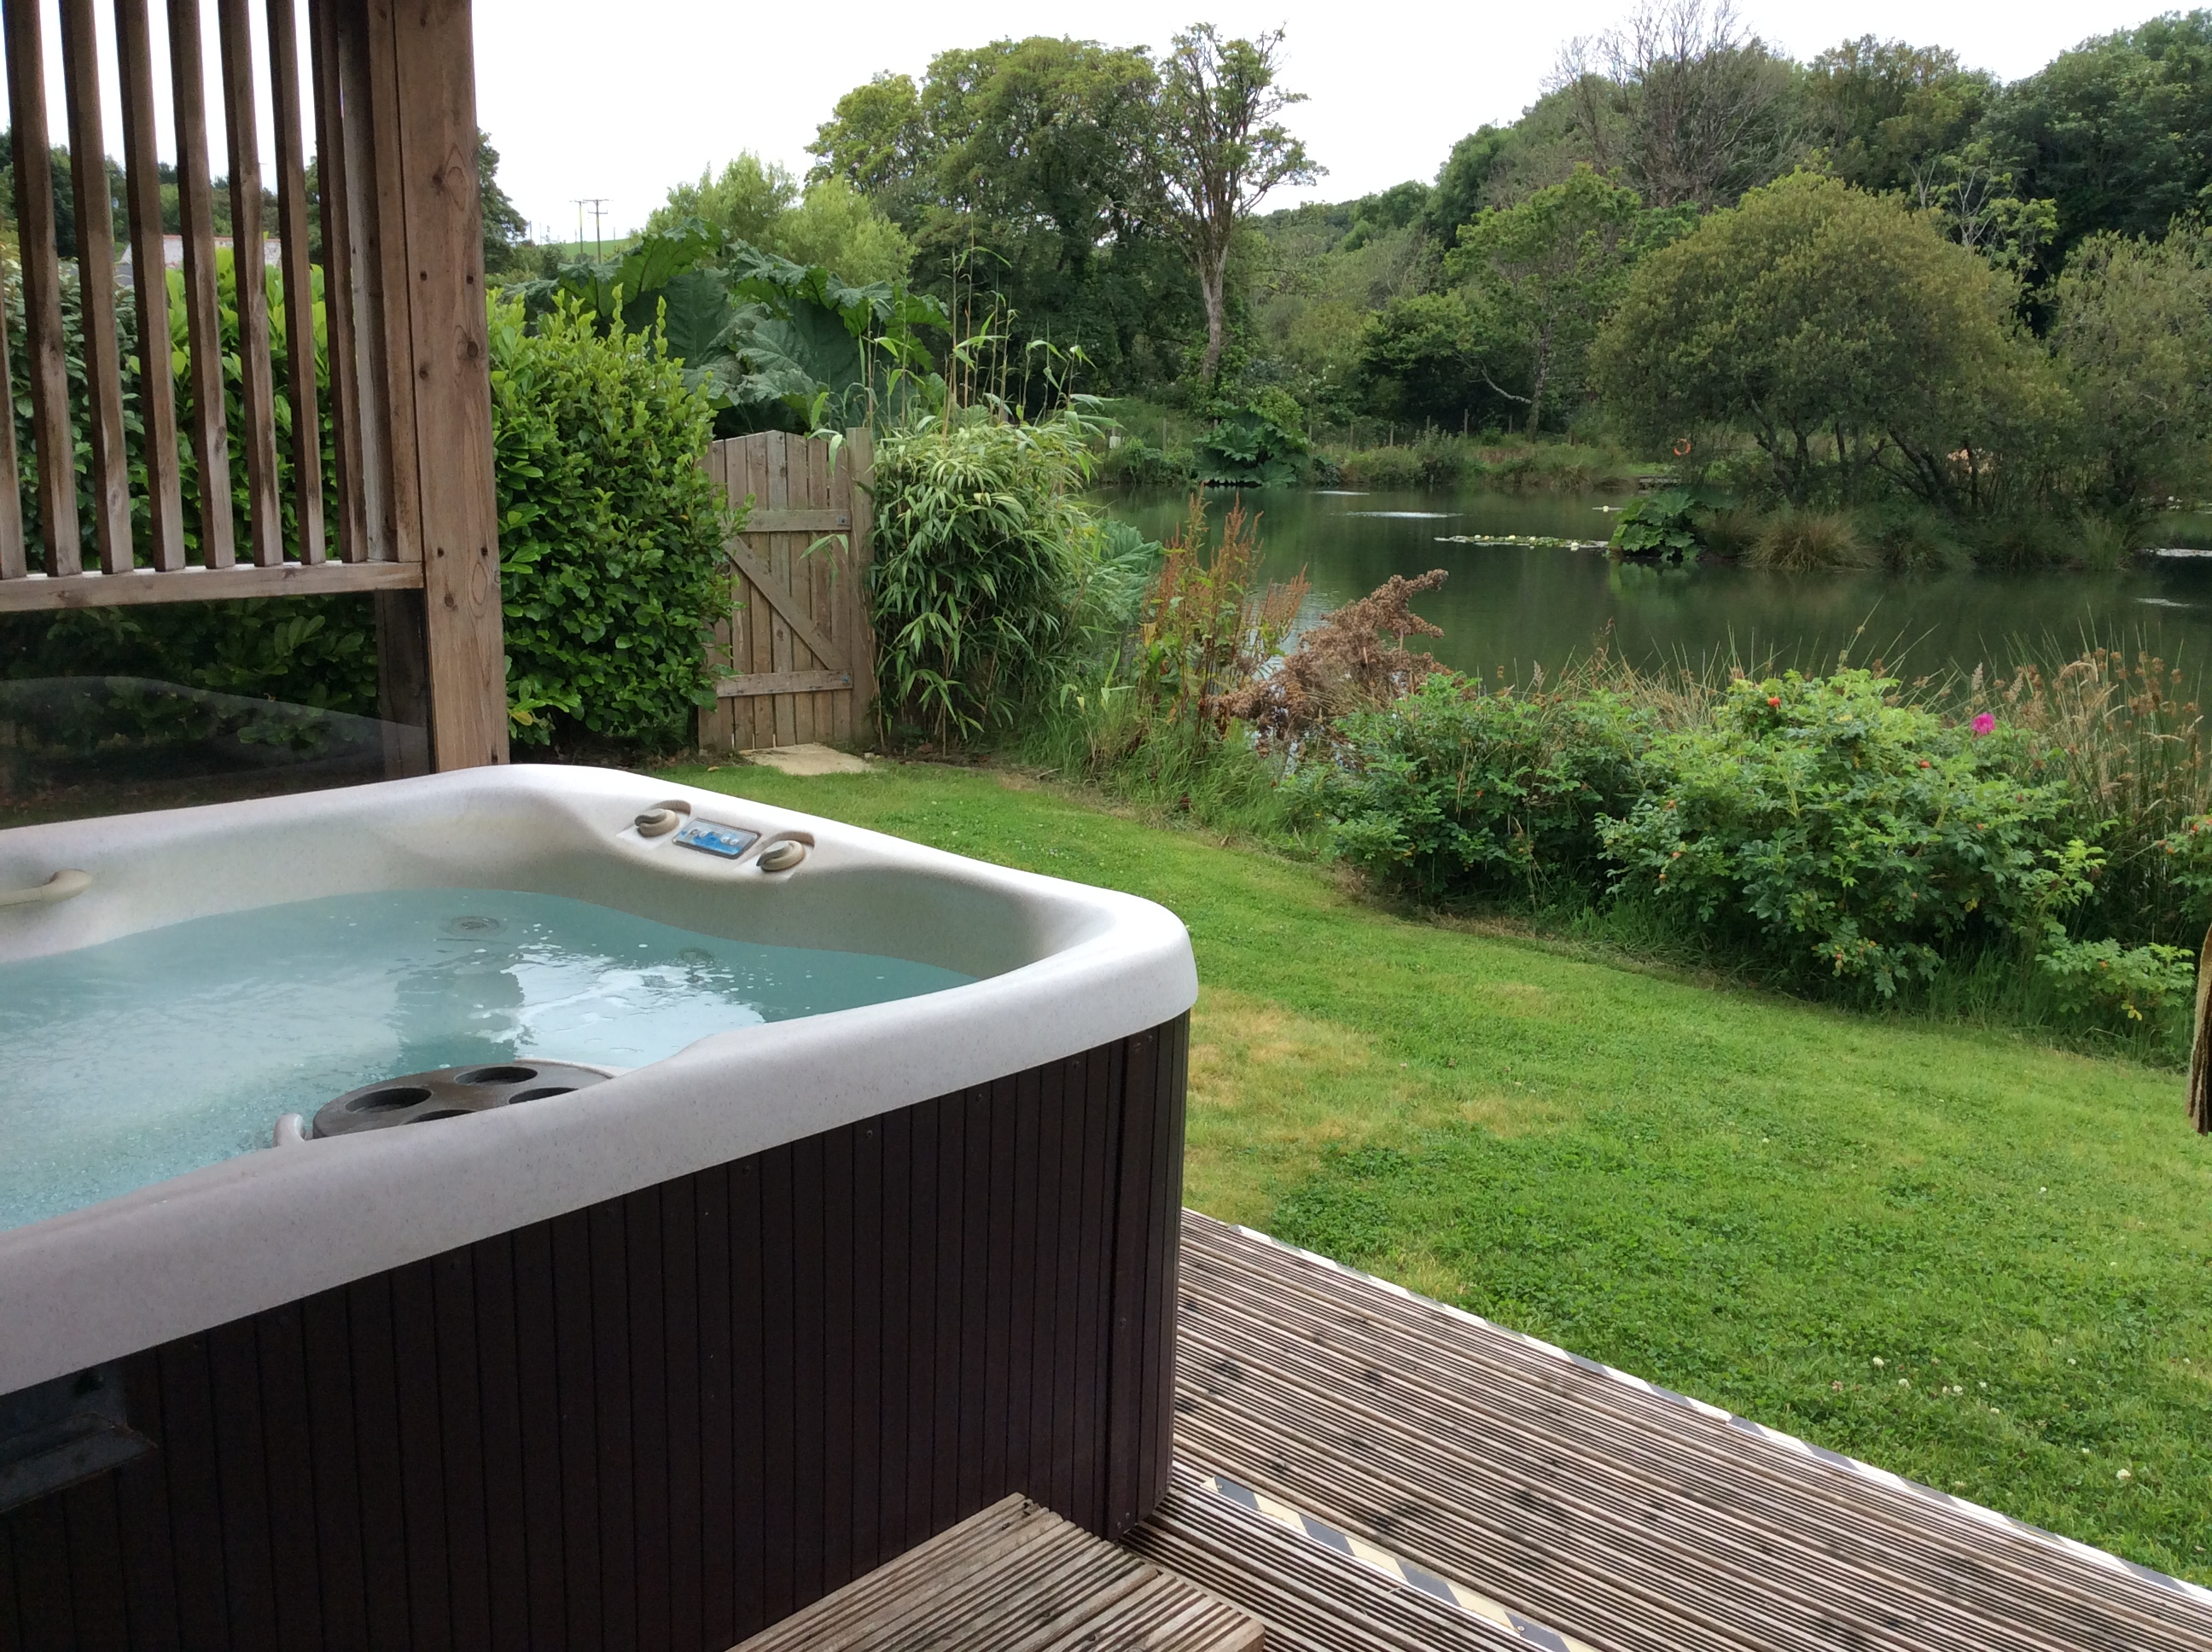 Hot tub and fishing holidays at Woodpecker Lodge. Luxurious accommodation, a private fishing lake and a hot tub for those nights under the stars. Just another day at Nanpusker Lakeside Lodges, Cornwall.